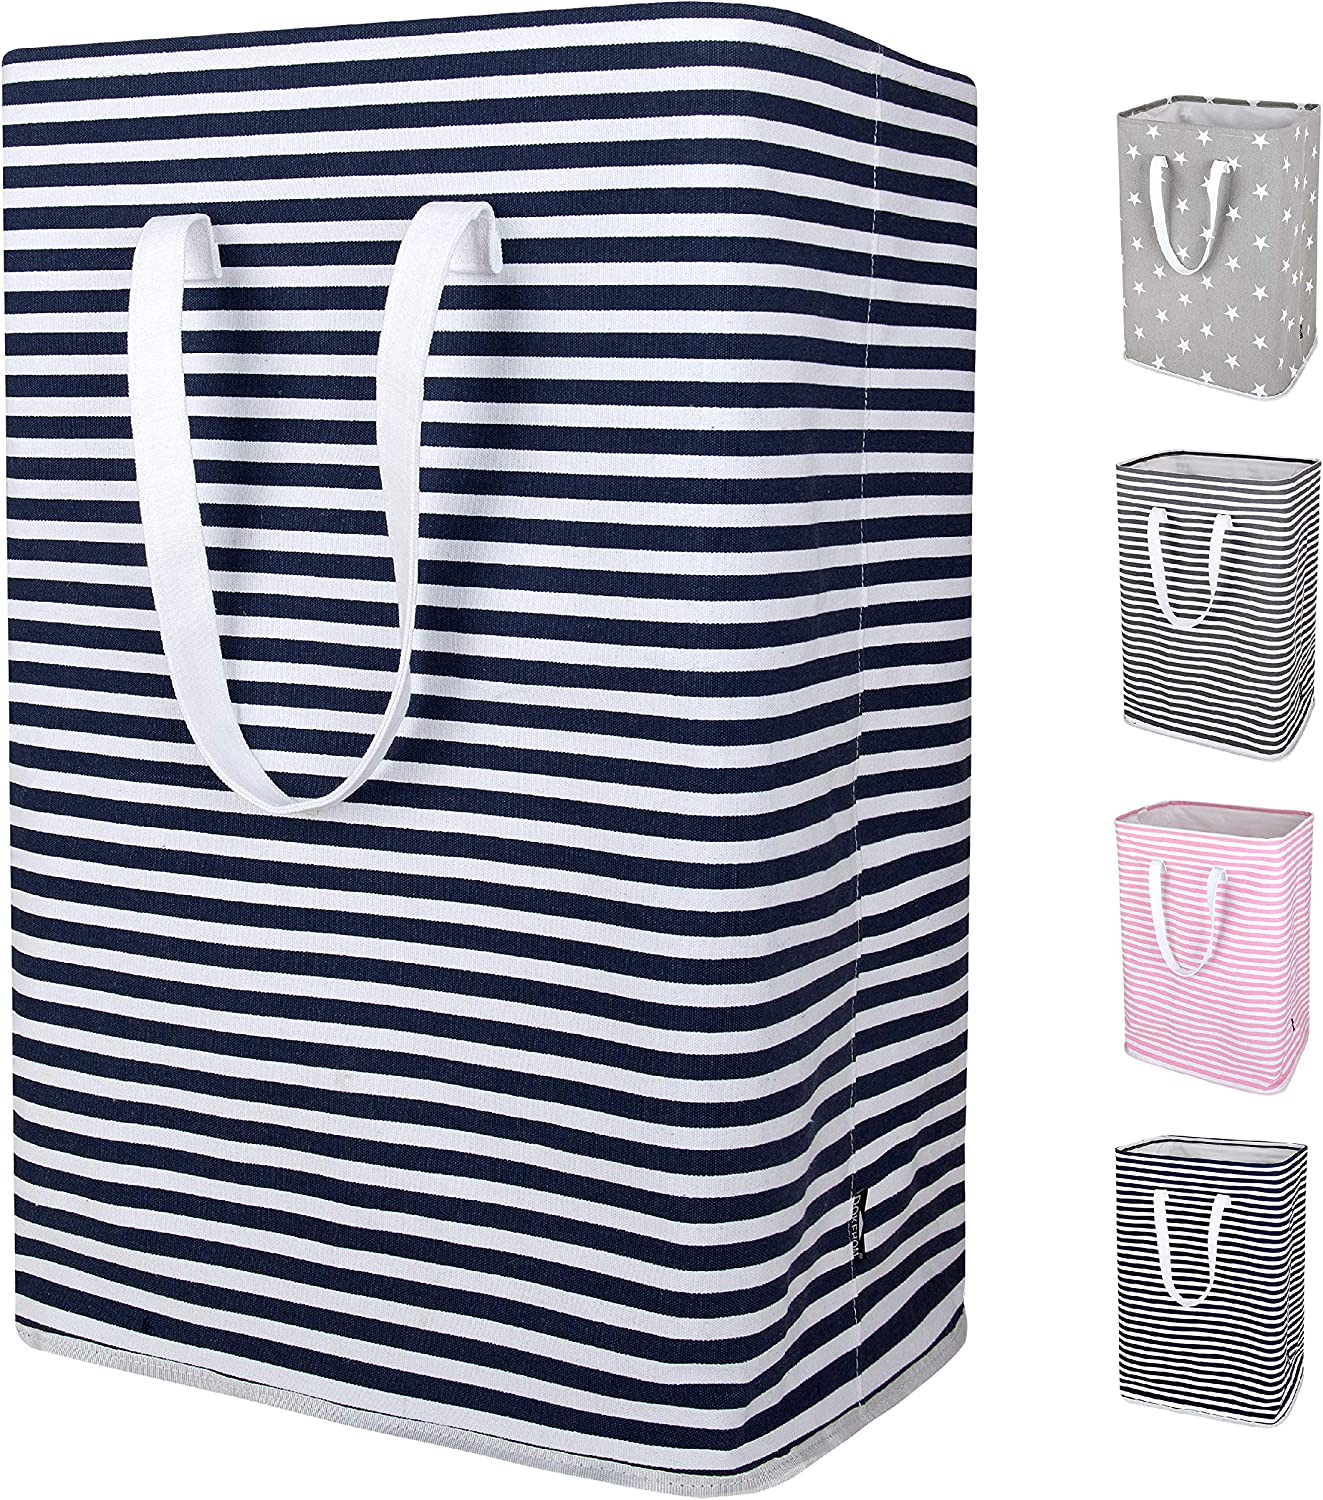 DOKEHOM 24-Inches Thickened X-Large Laundry Basket with Drawstring, Waterproof Square Cube Cotton Linen Collapsible Storage Basket (Blue Strips, XL)